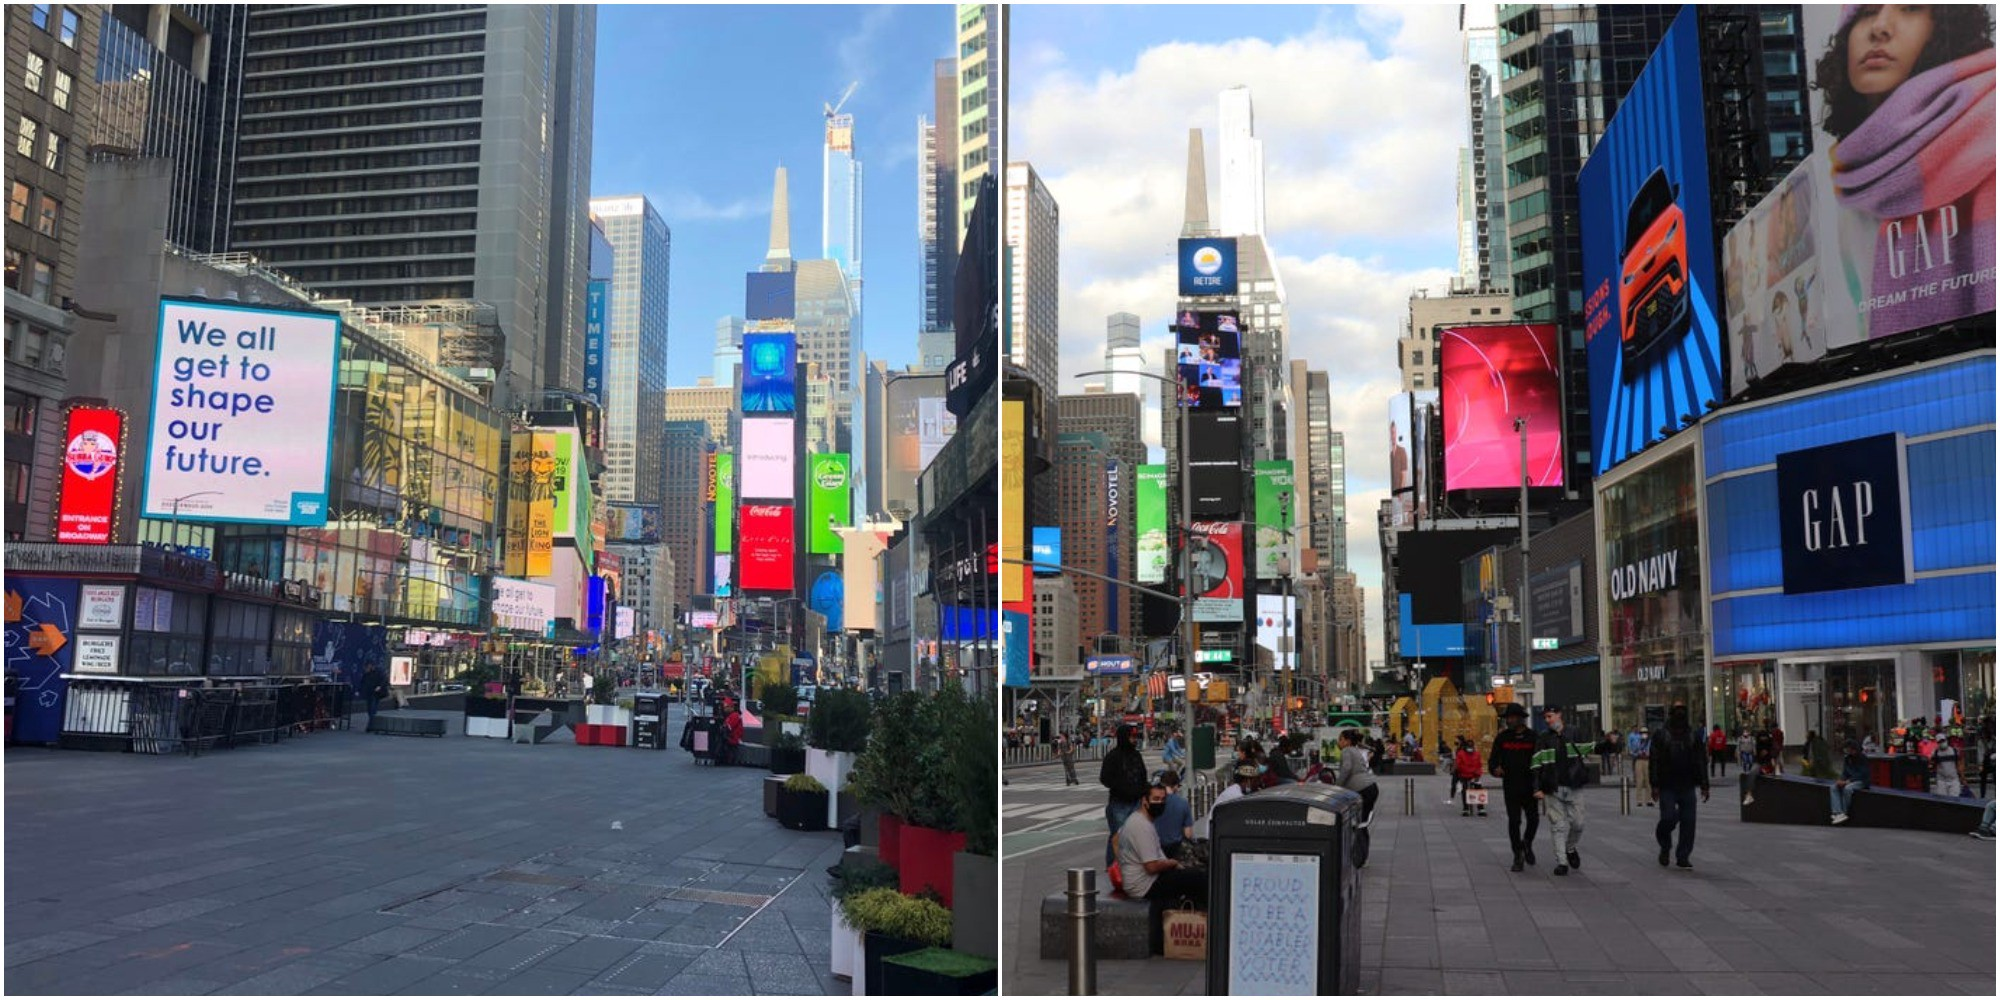 A photo on the left shows an empty Times Square. The image on the right shows people using it again.